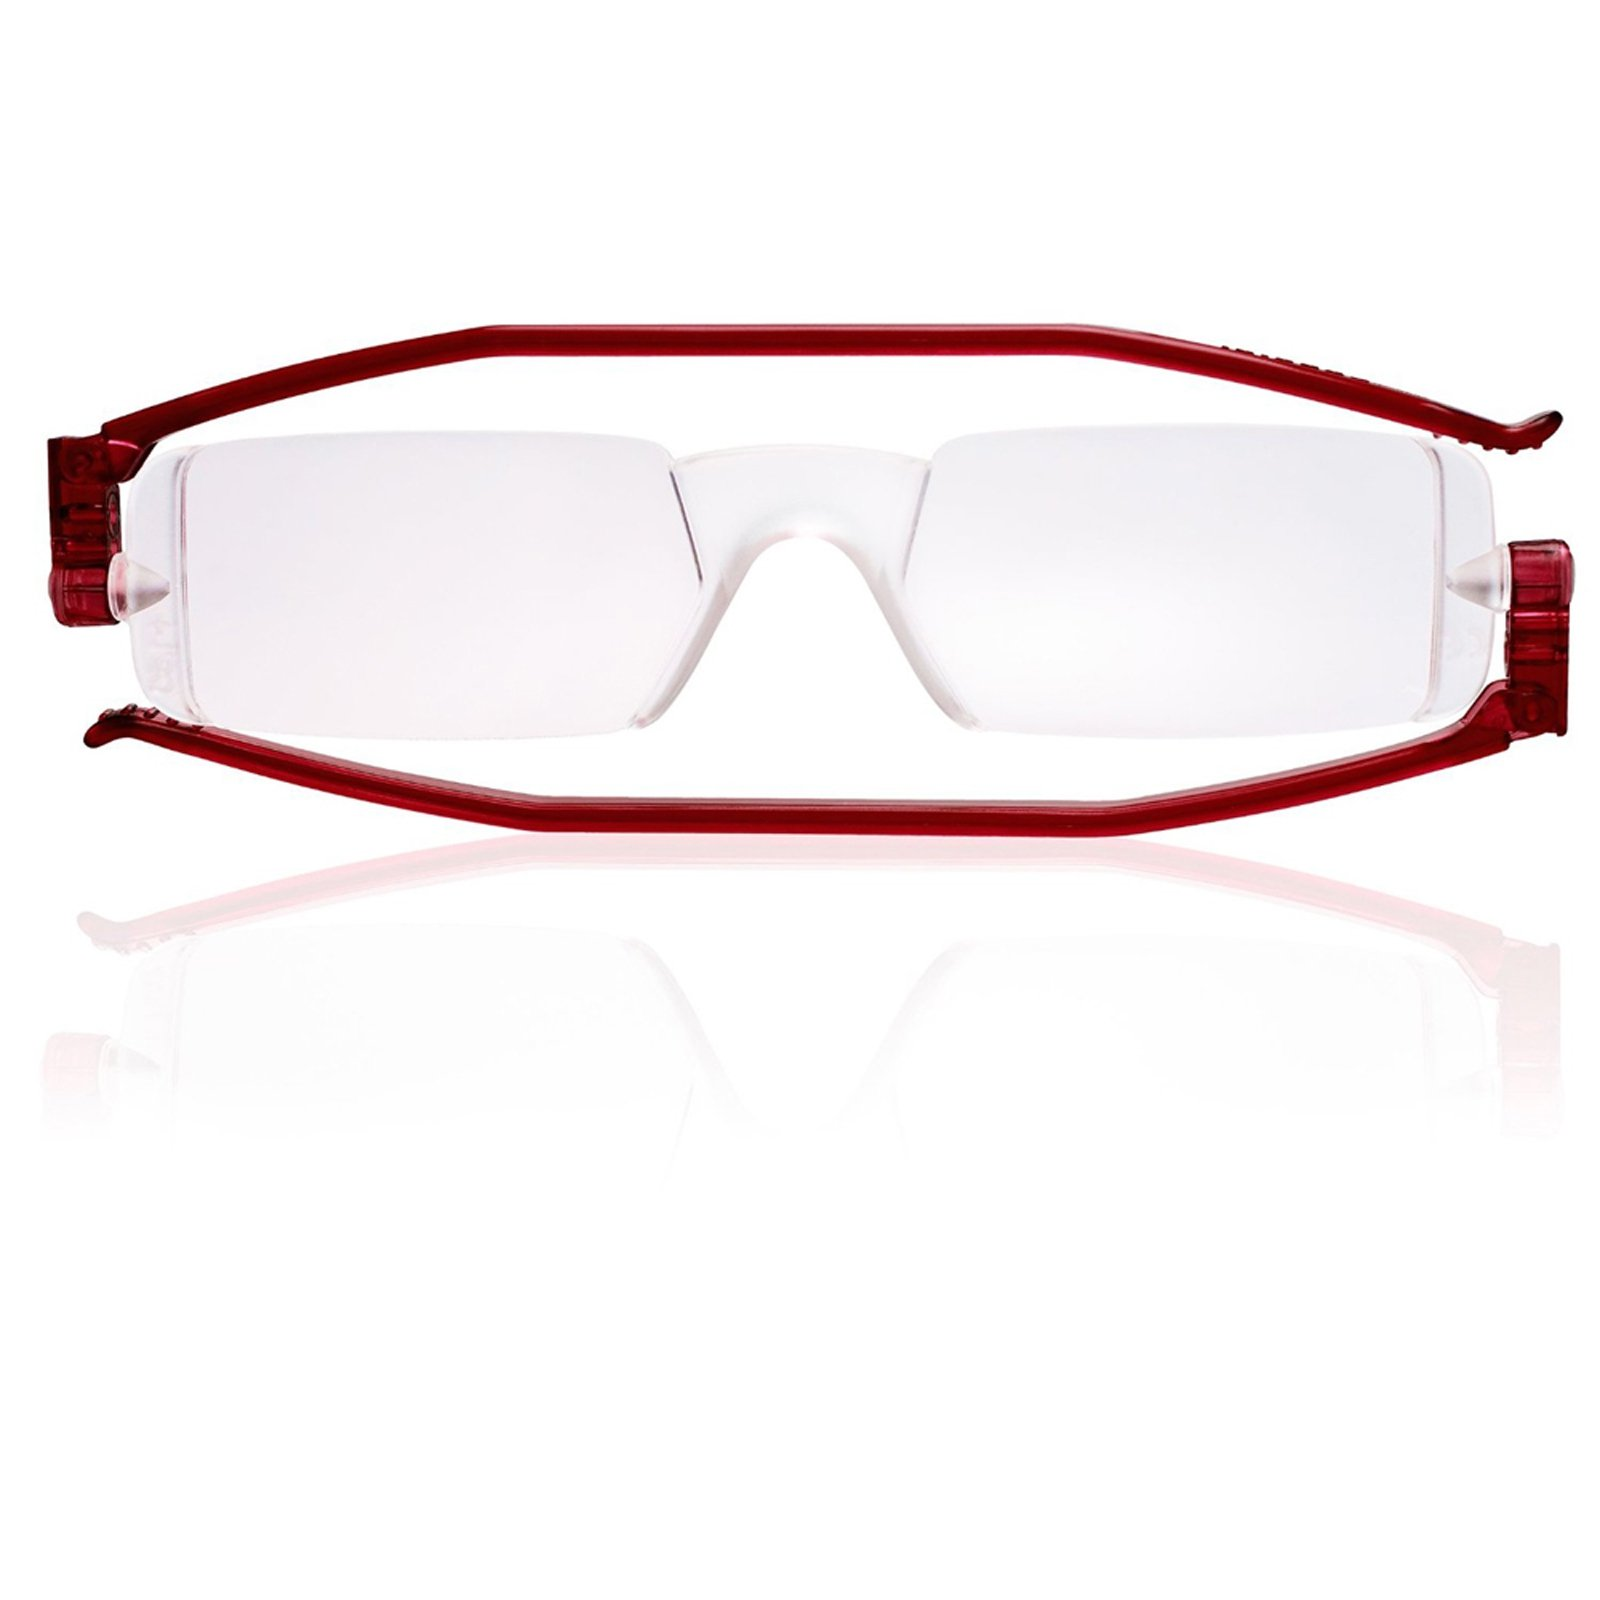 Nannini Italy Compact Ultra Thin Anallergic Red Reading Glasses - 1.0 Optic Strength